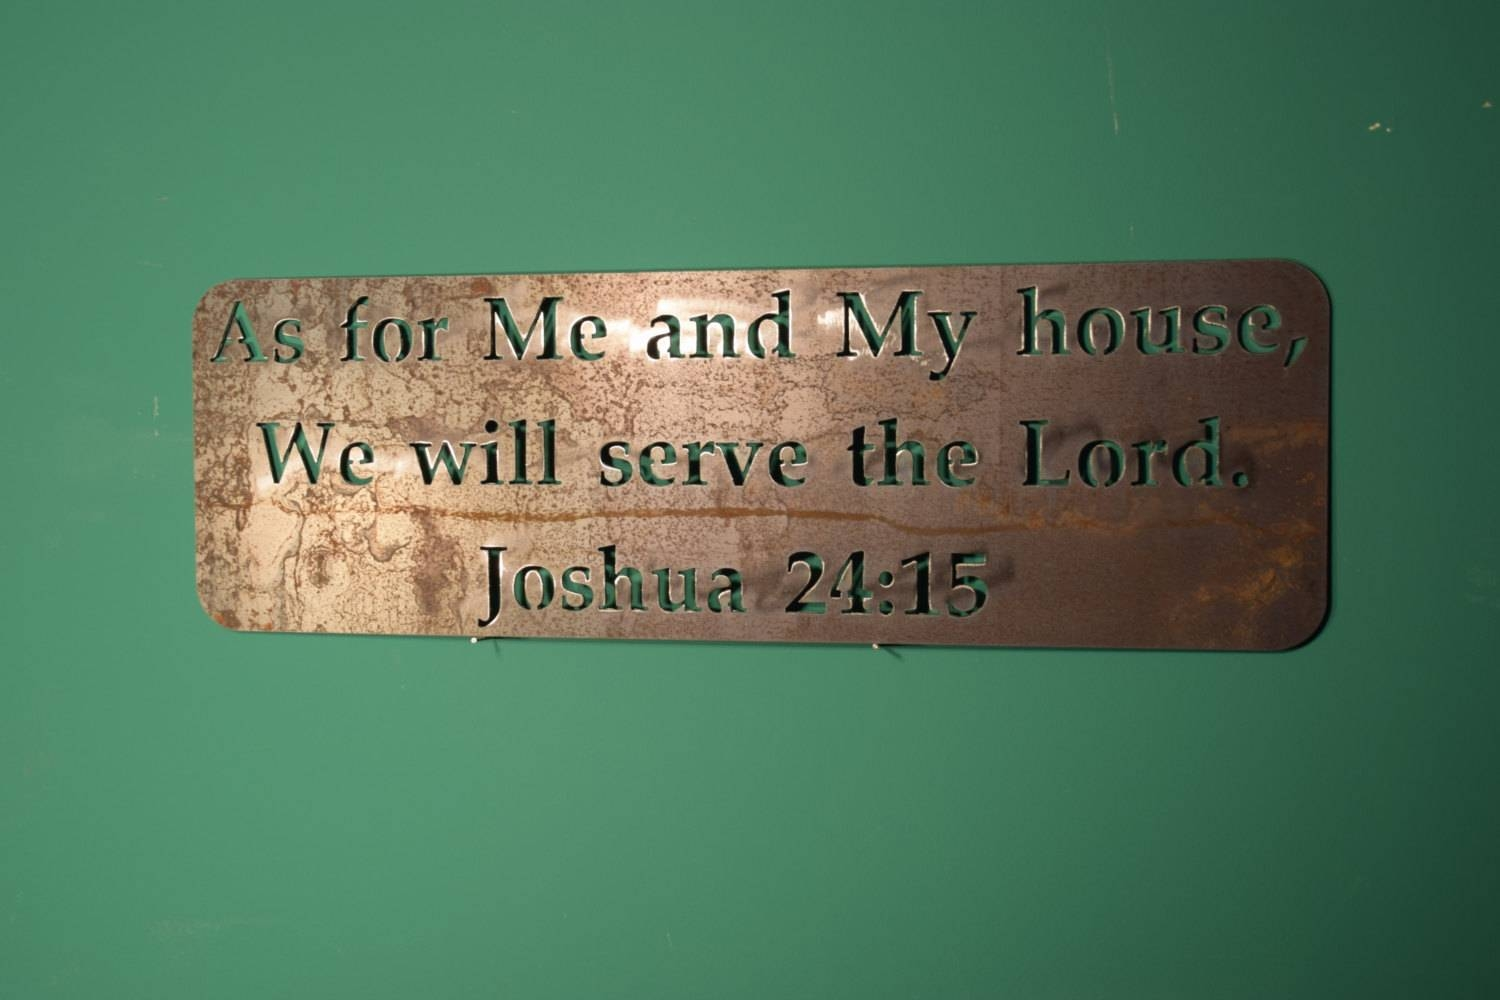 Bible Verse Wall Decor Fixer Upper Wall Decor Fixer Upper With Latest As For Me And My House Metal Wall Art (View 16 of 20)